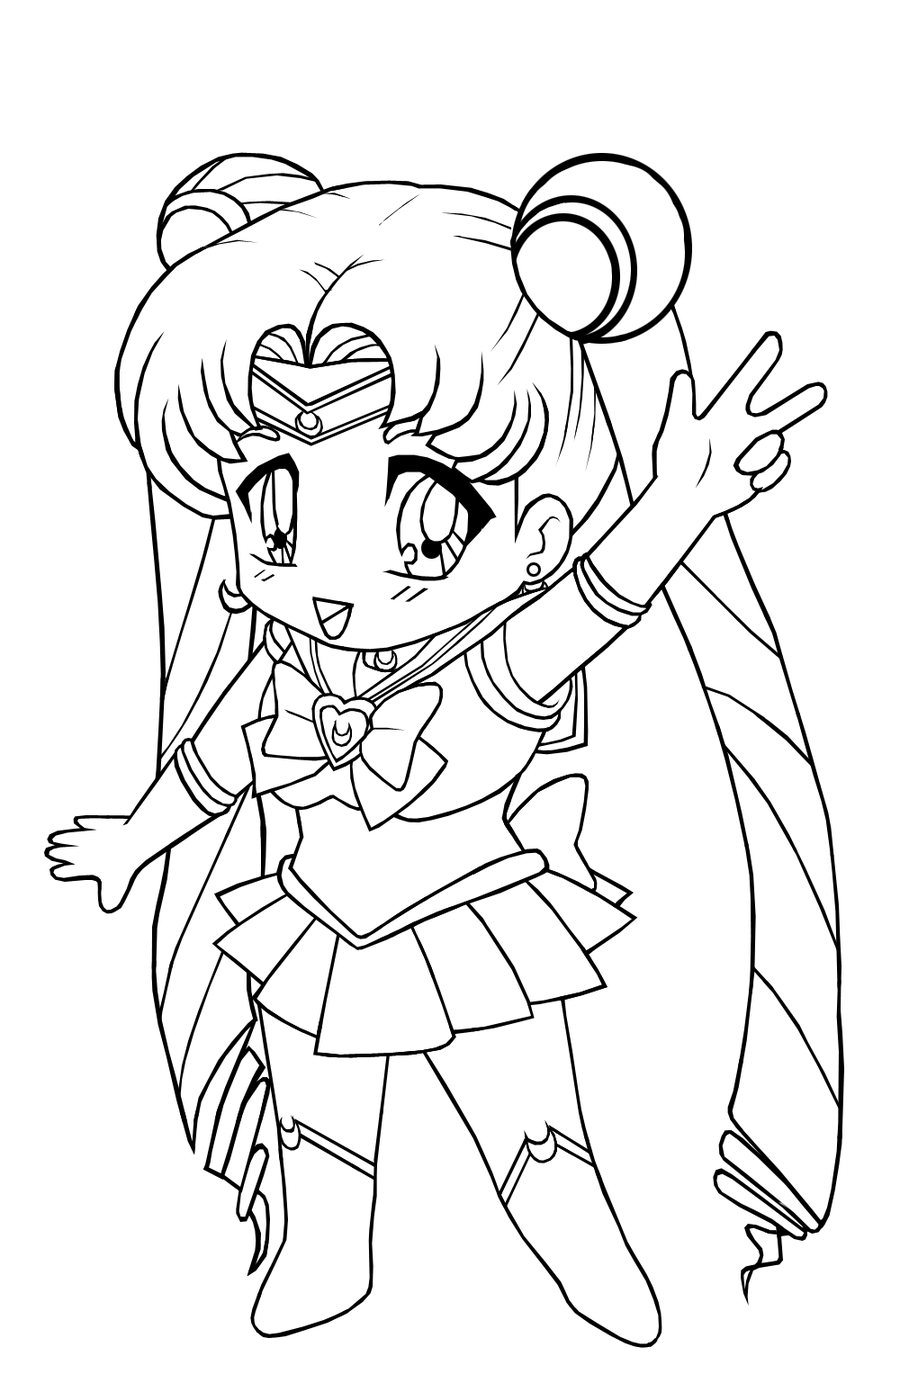 anime coloring pages online anime coloring pages best coloring pages for kids coloring anime pages online